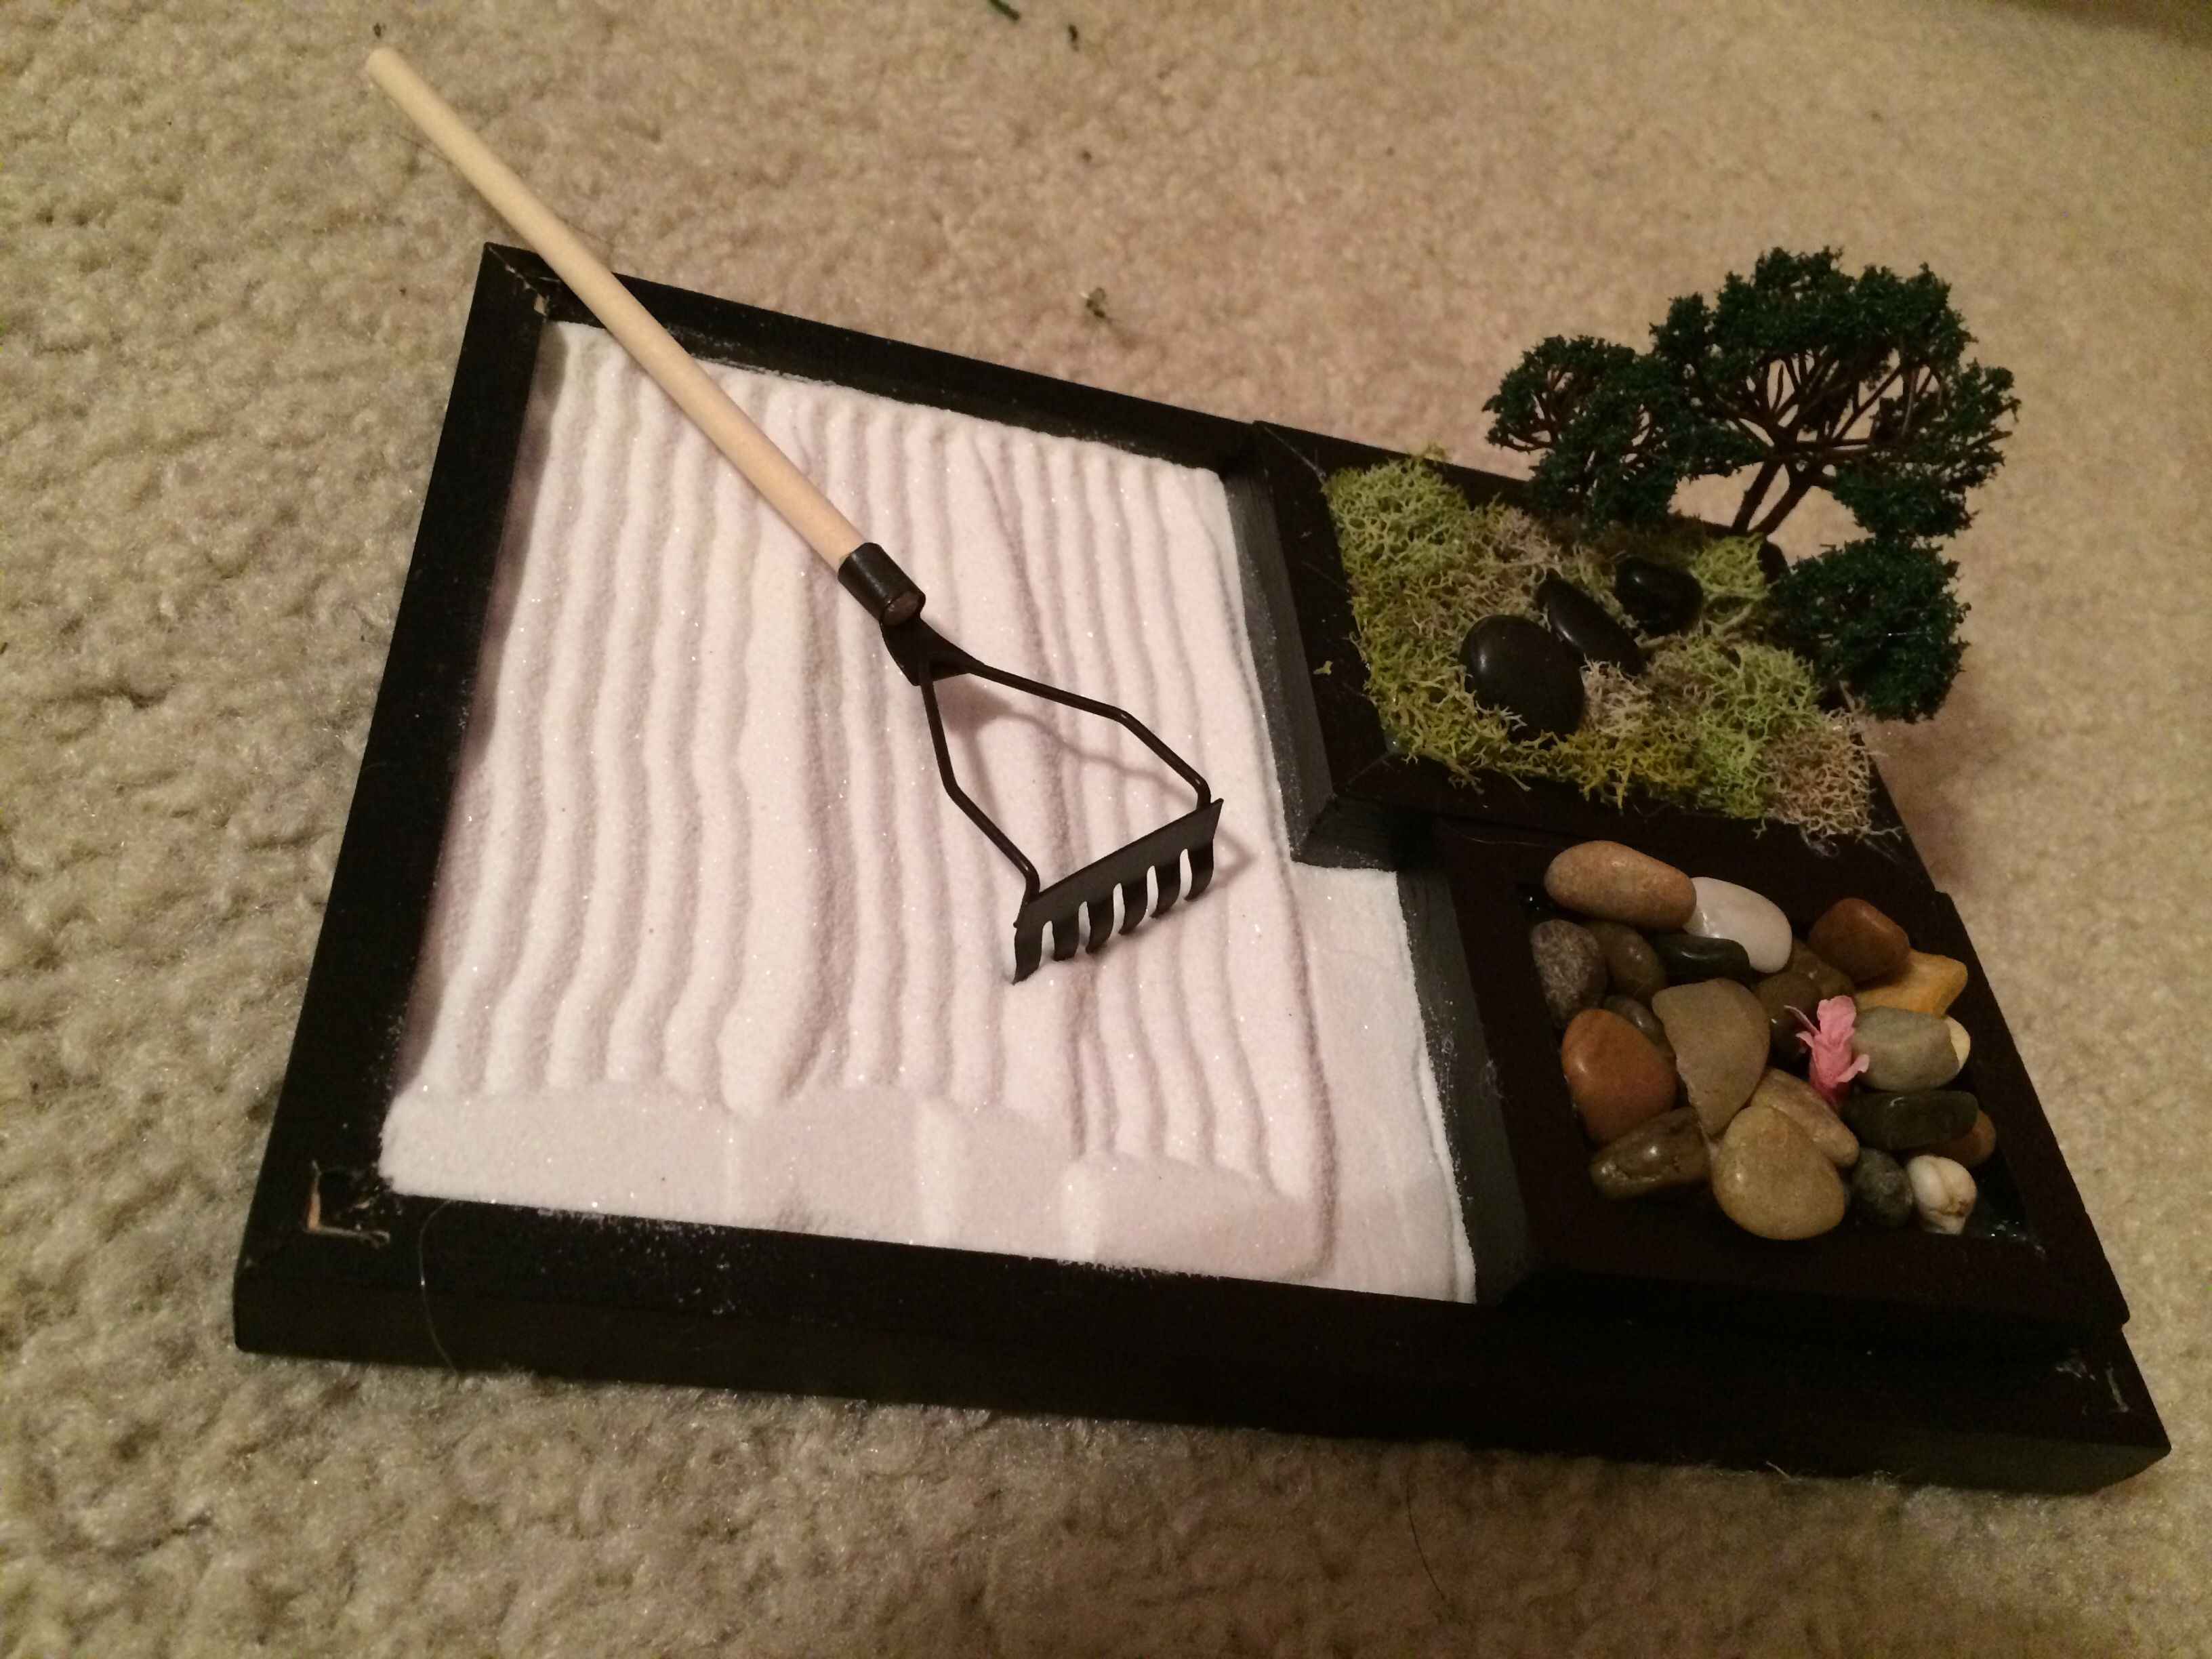 I Made A Zen Garden Out Of Small Canvases, Moss, River Stones, Sand